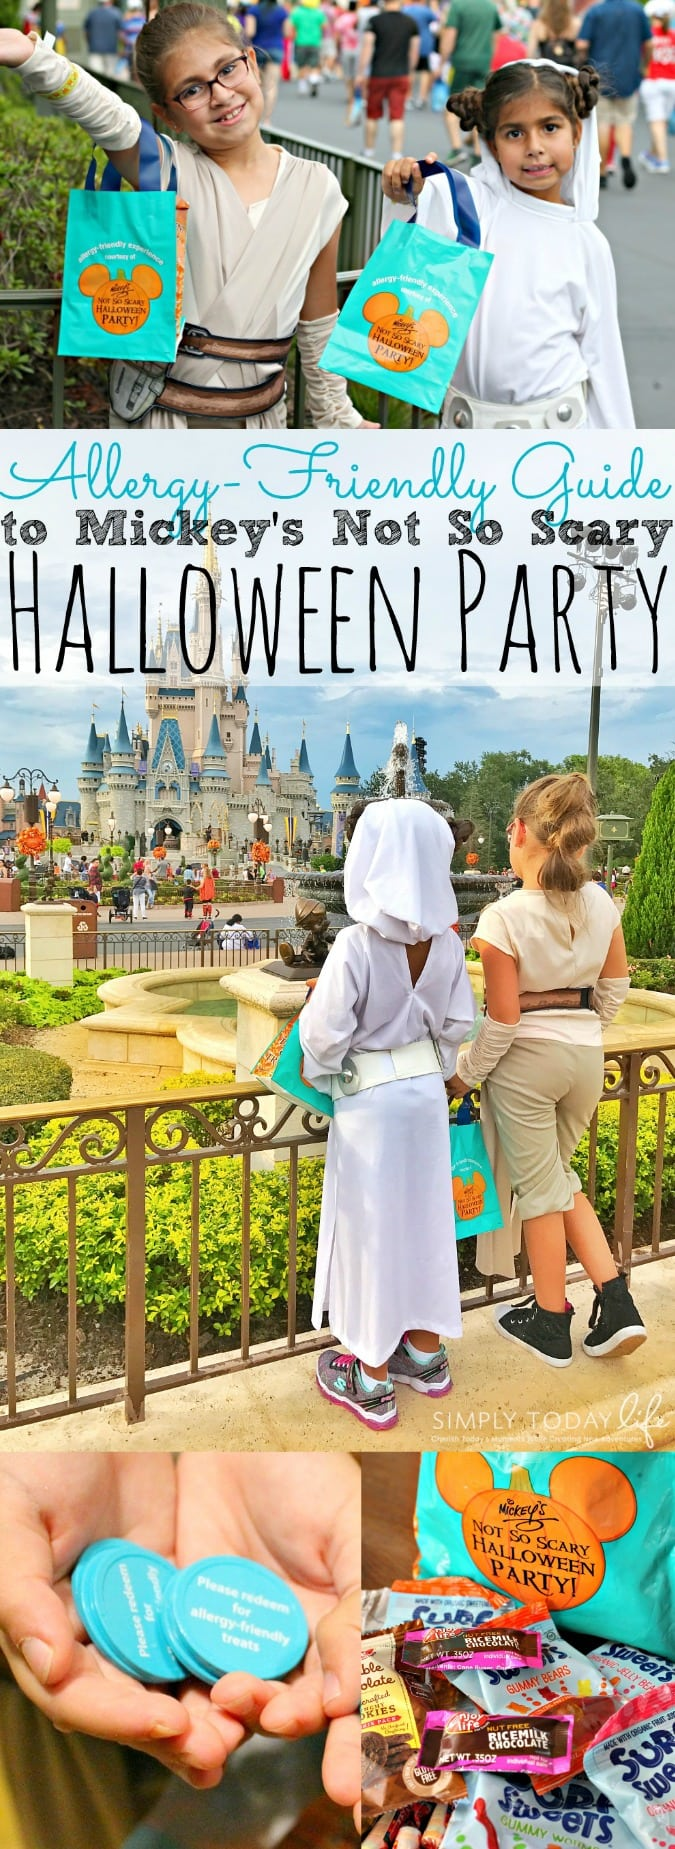 Mickey's Not So Scary Halloween Party Allergy Guide